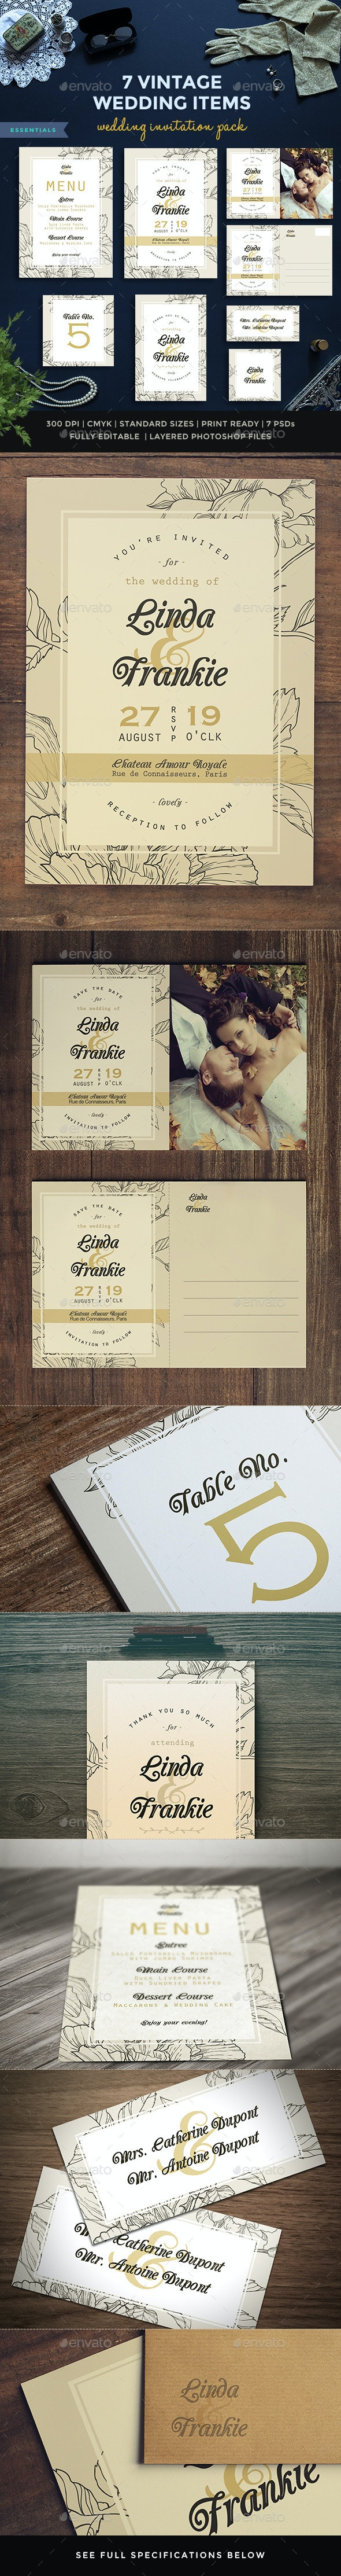 7 Vintage Items - Wedding Pack II - Weddings Cards & Invites